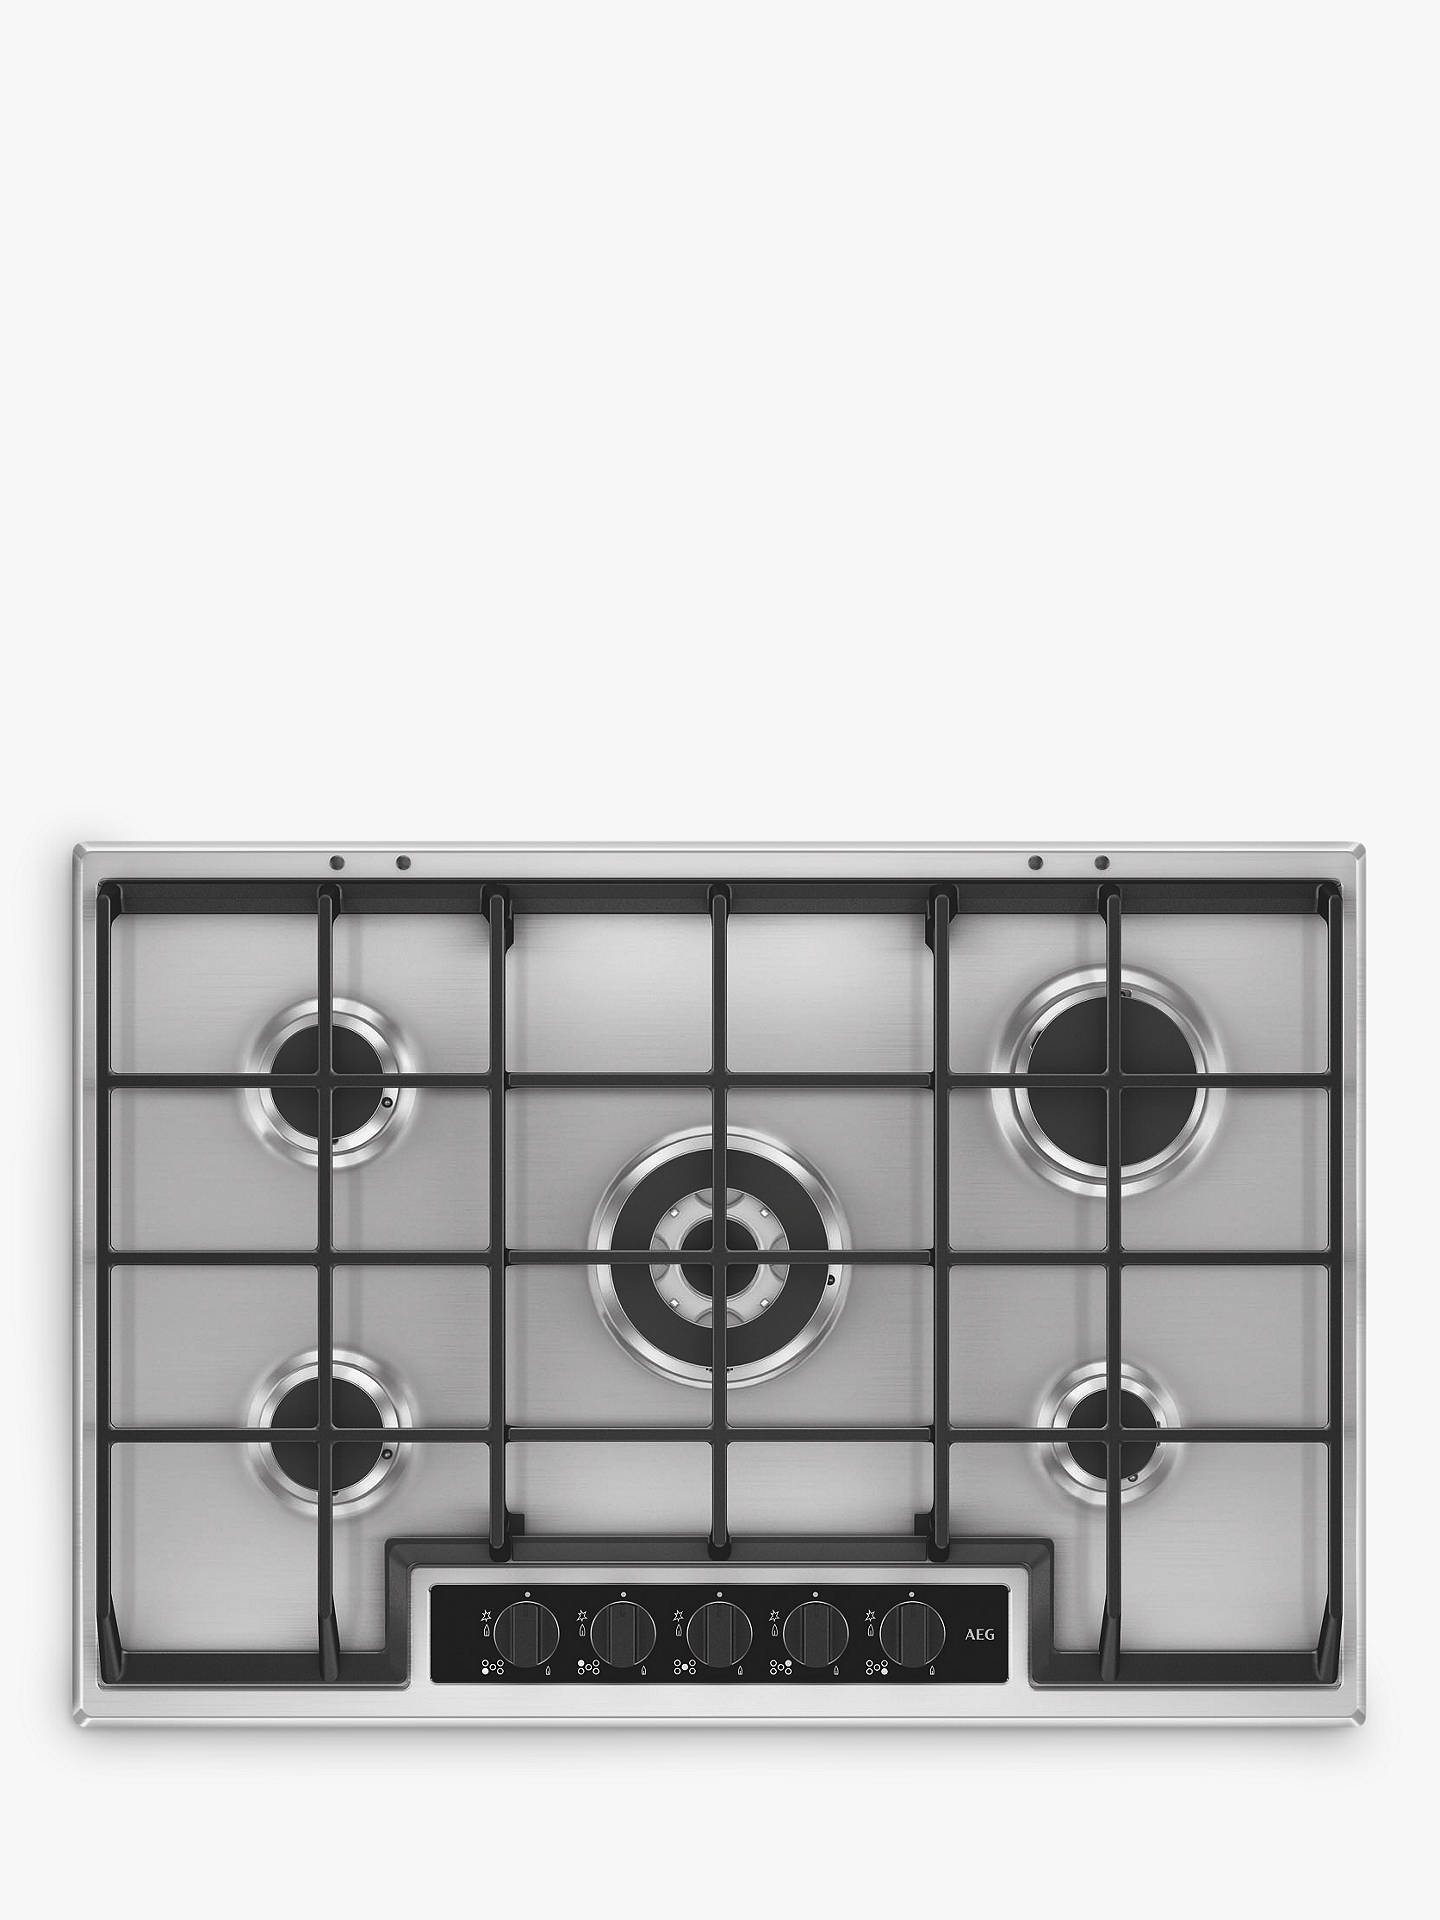 BuyAEG HG75SY5451 Gas Hob, Stainless Steel Online at johnlewis.com